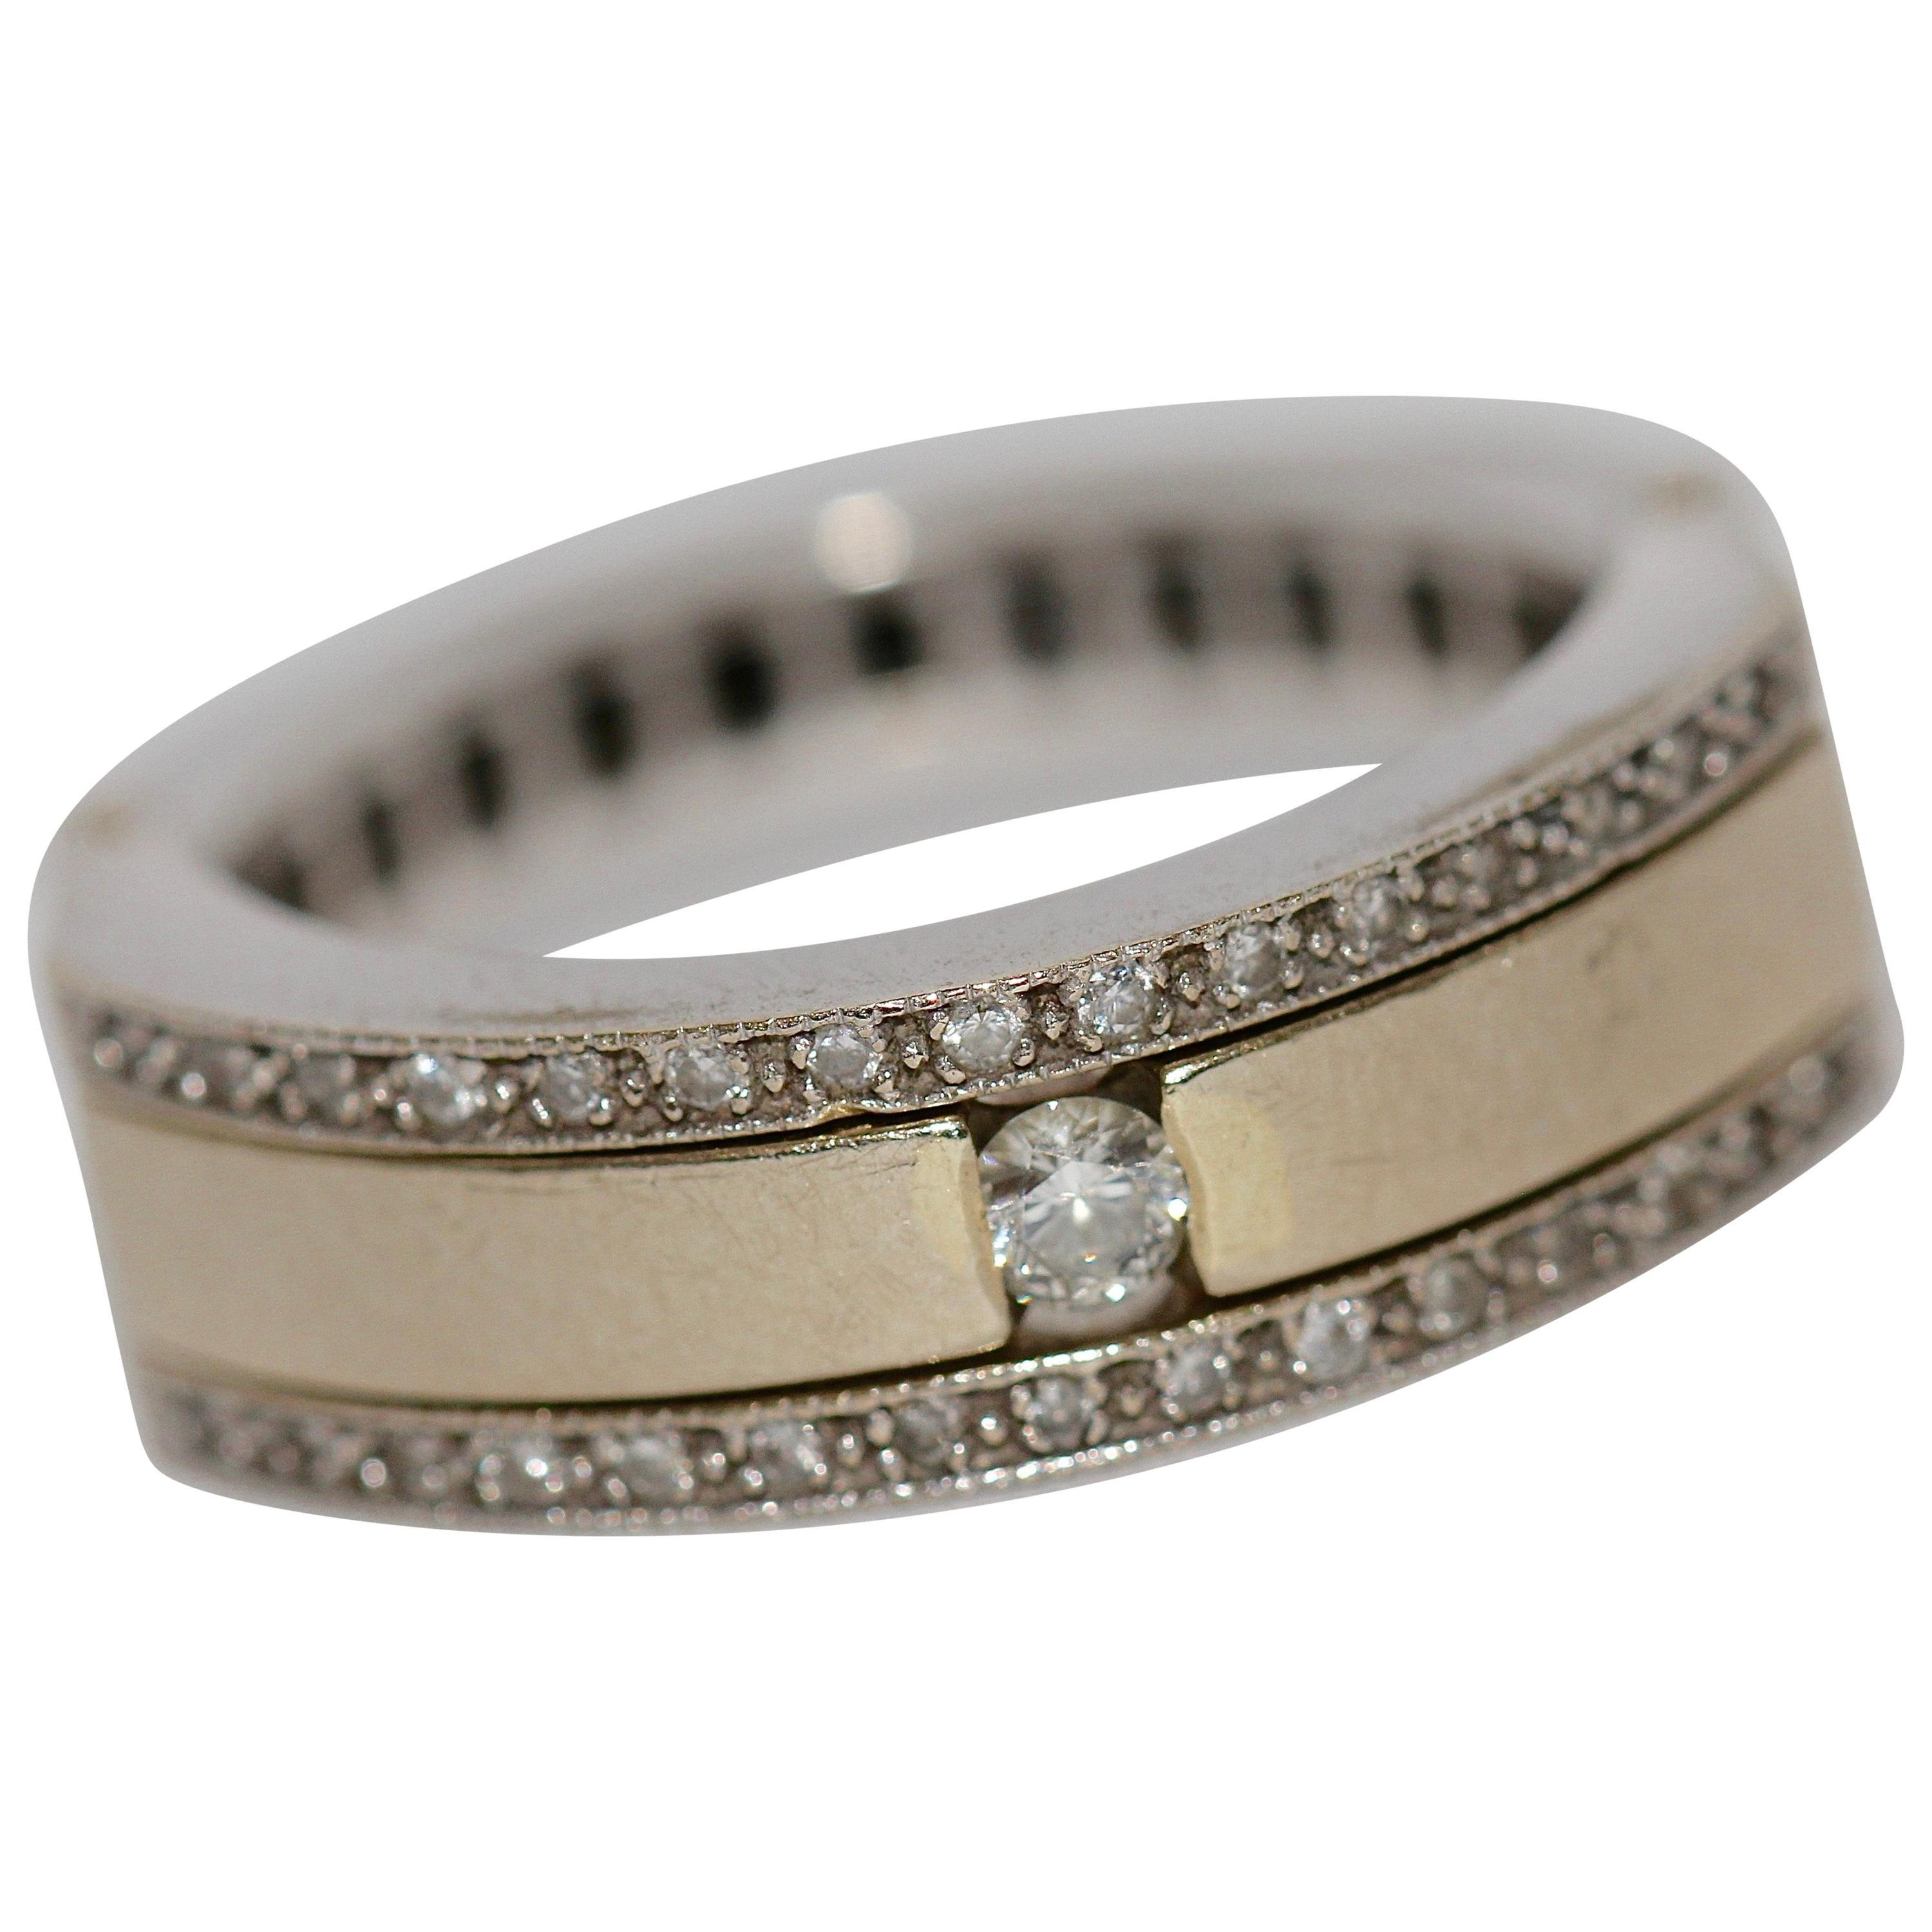 18 Karat Gold Eternity, Transformation Memory Ring with black and white Diamonds